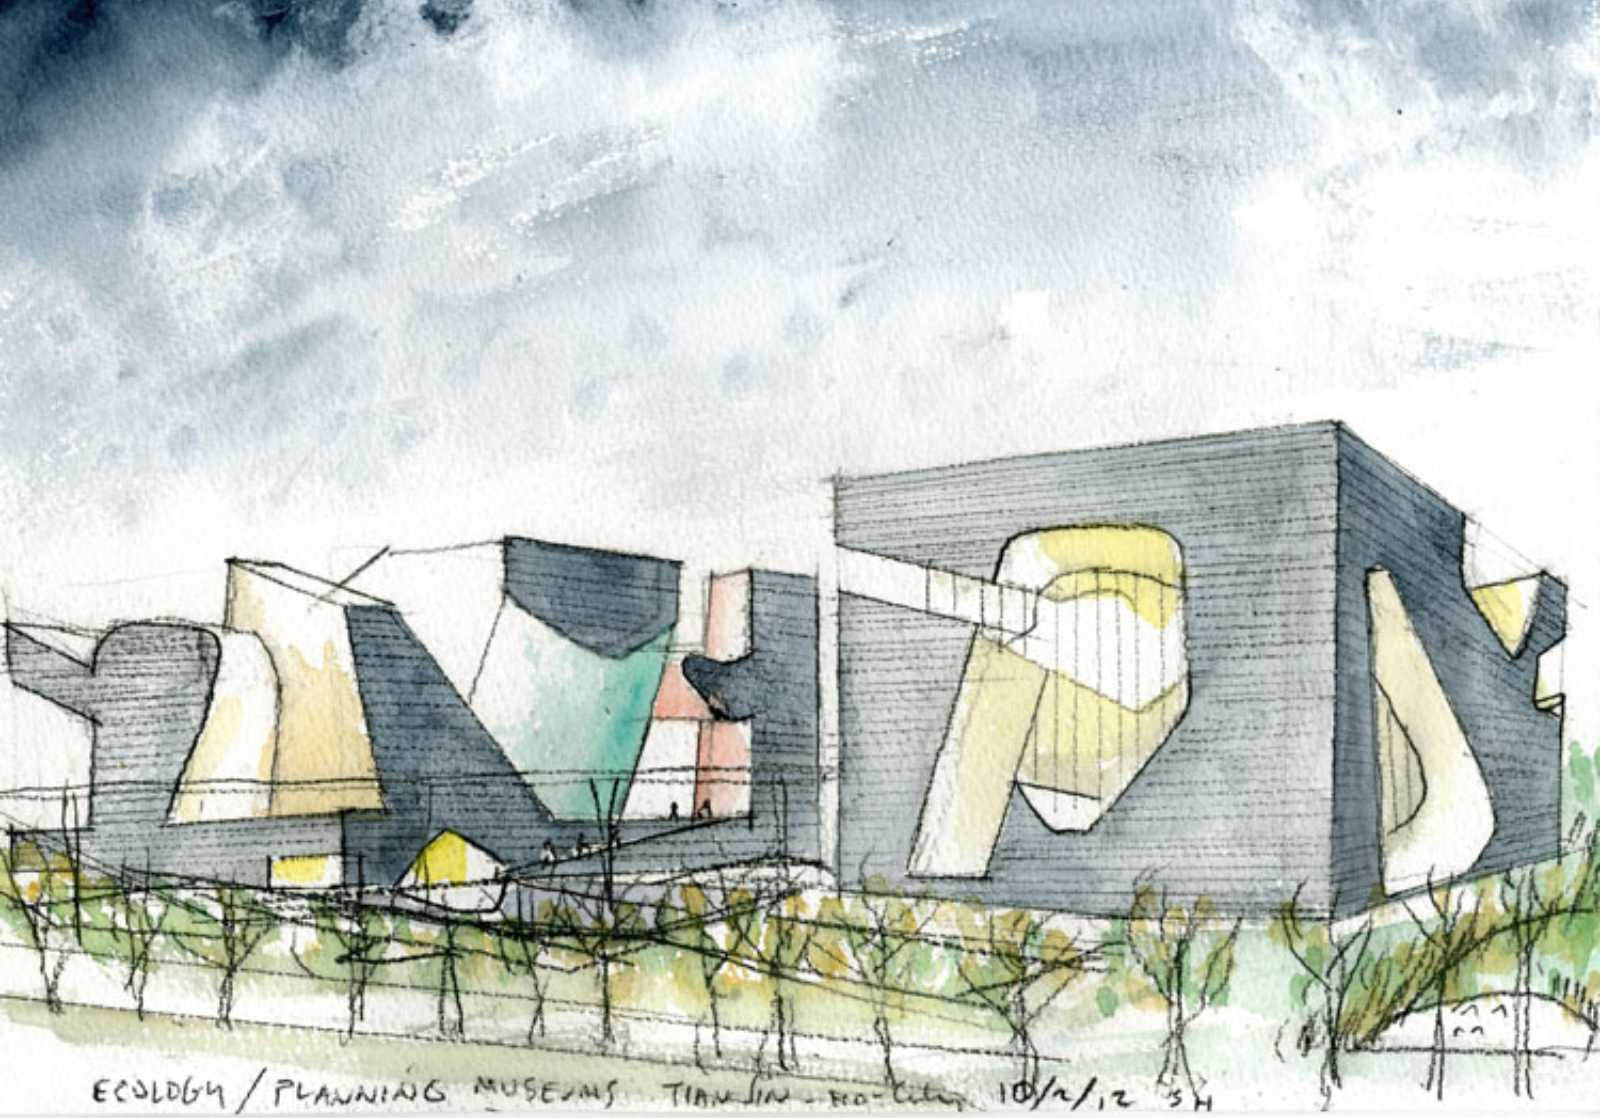 ECOLOGY MUSEUM AND PLANNING MUSEUM BY STEVEN HOLL ...